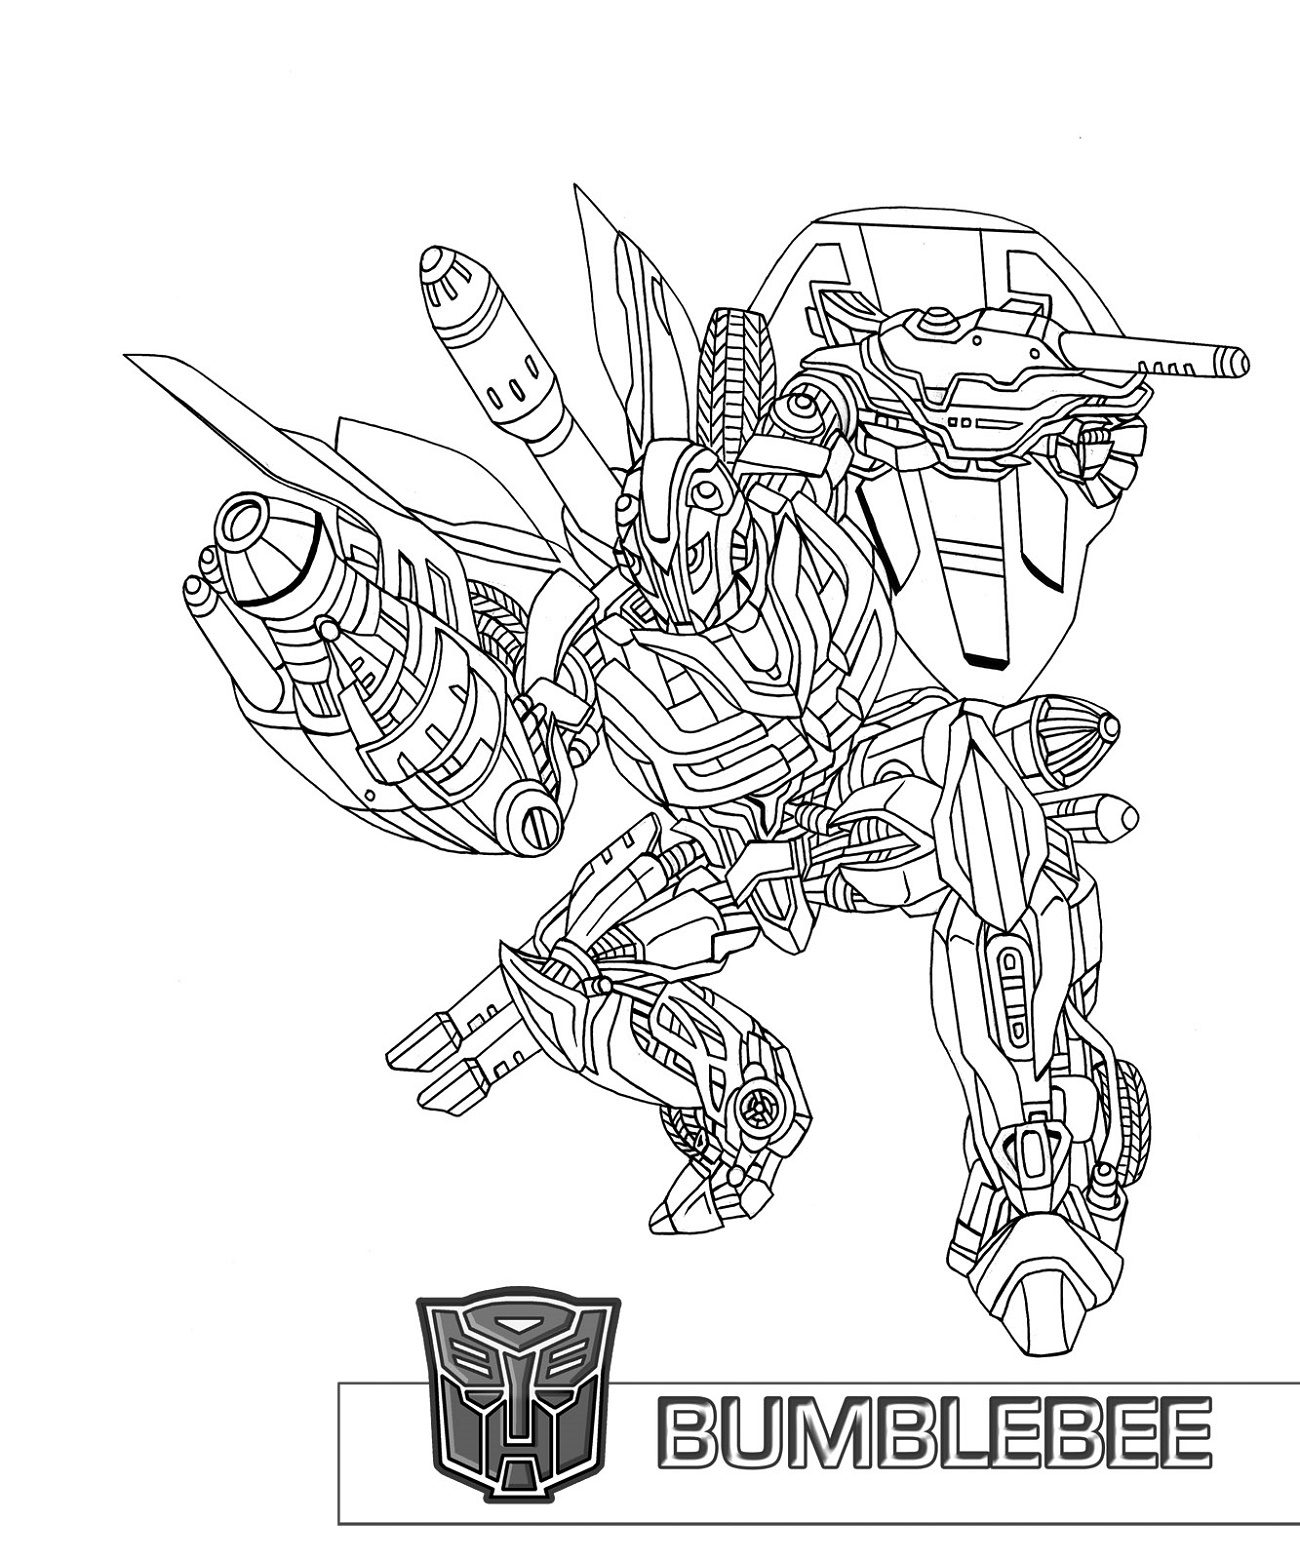 Bumblebee Transformer Coloring Page Printable